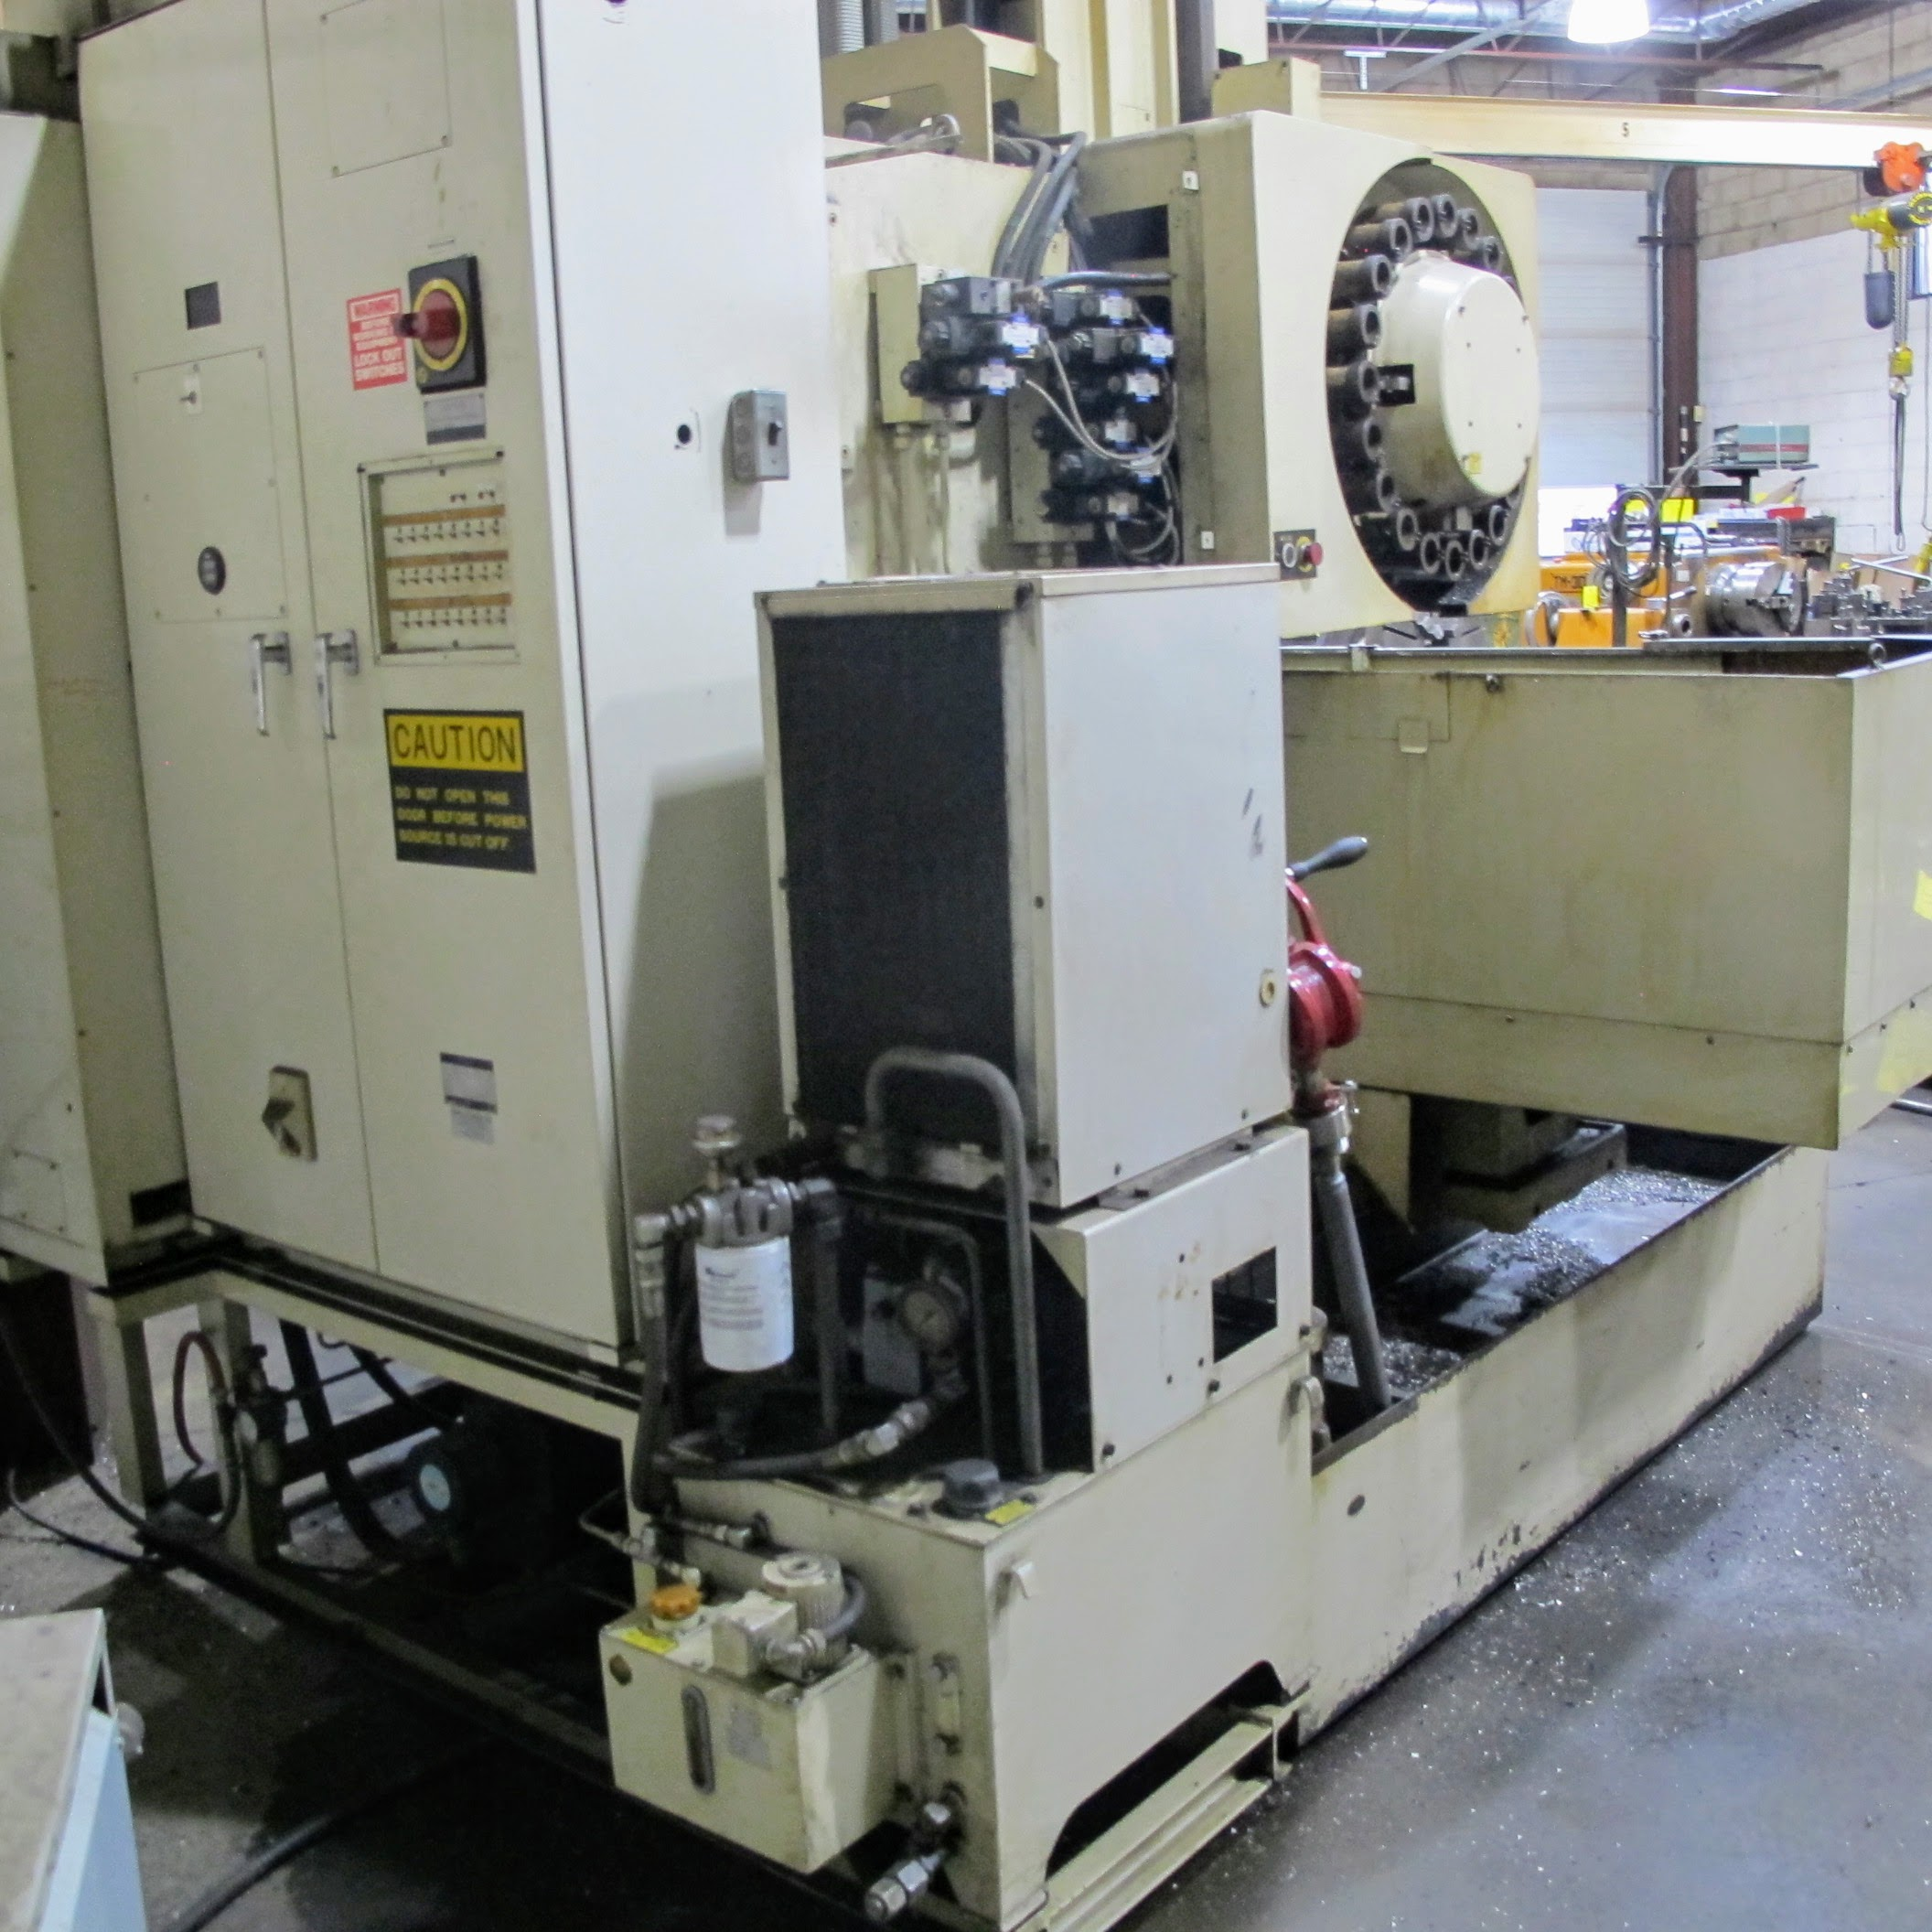 "SHIBAURA VMC-45 CNC VERTICAL MACHINING CENTER, 18"" X 40"" TABLE, TOSNUC CNC CONTROLS, 20 ATC, COOLING - Image 3 of 5"